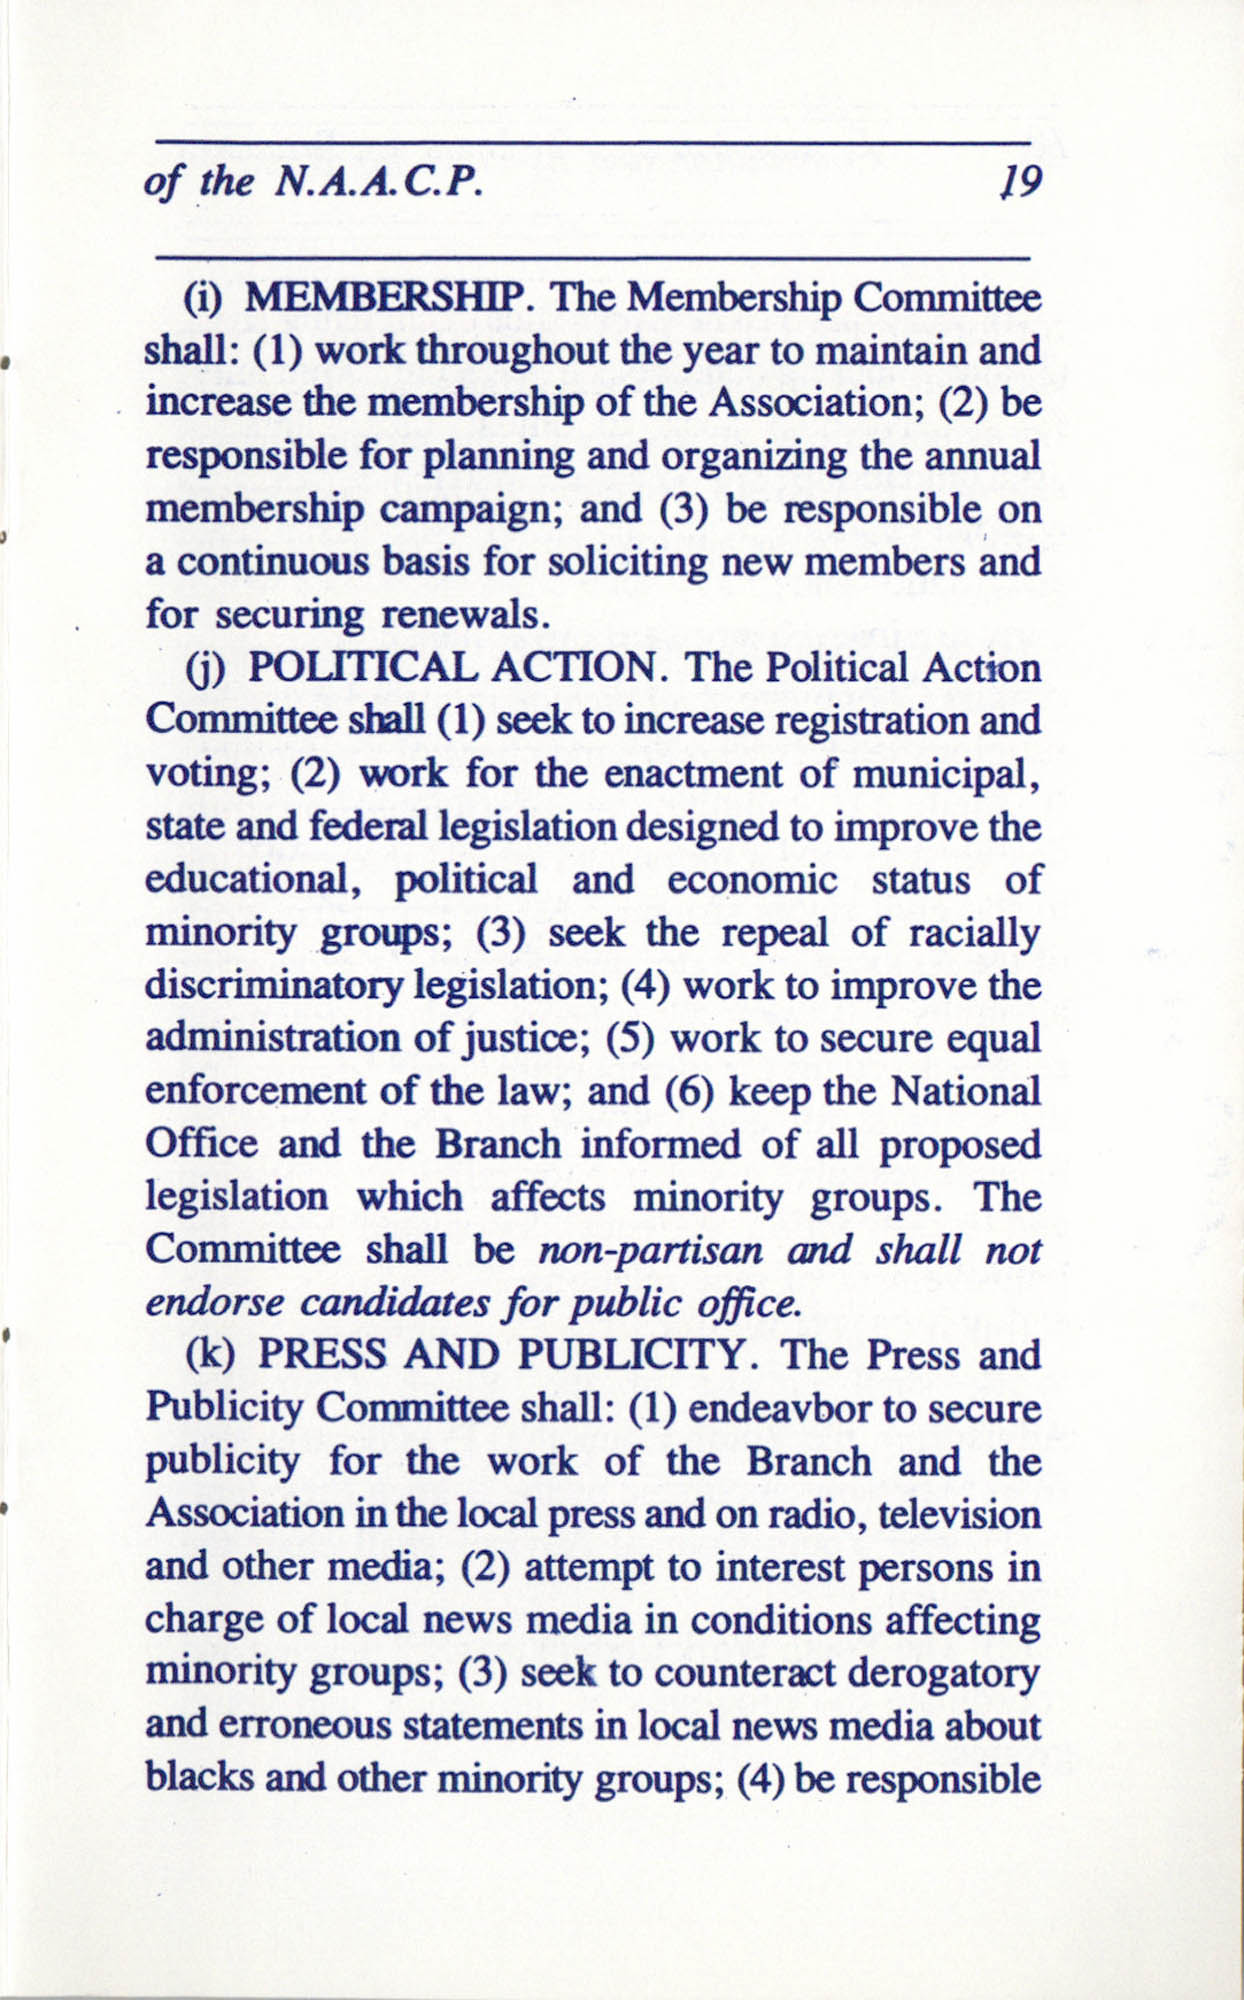 Constitution and By-Laws for Branches of the NAACP, June 1993, Page 19